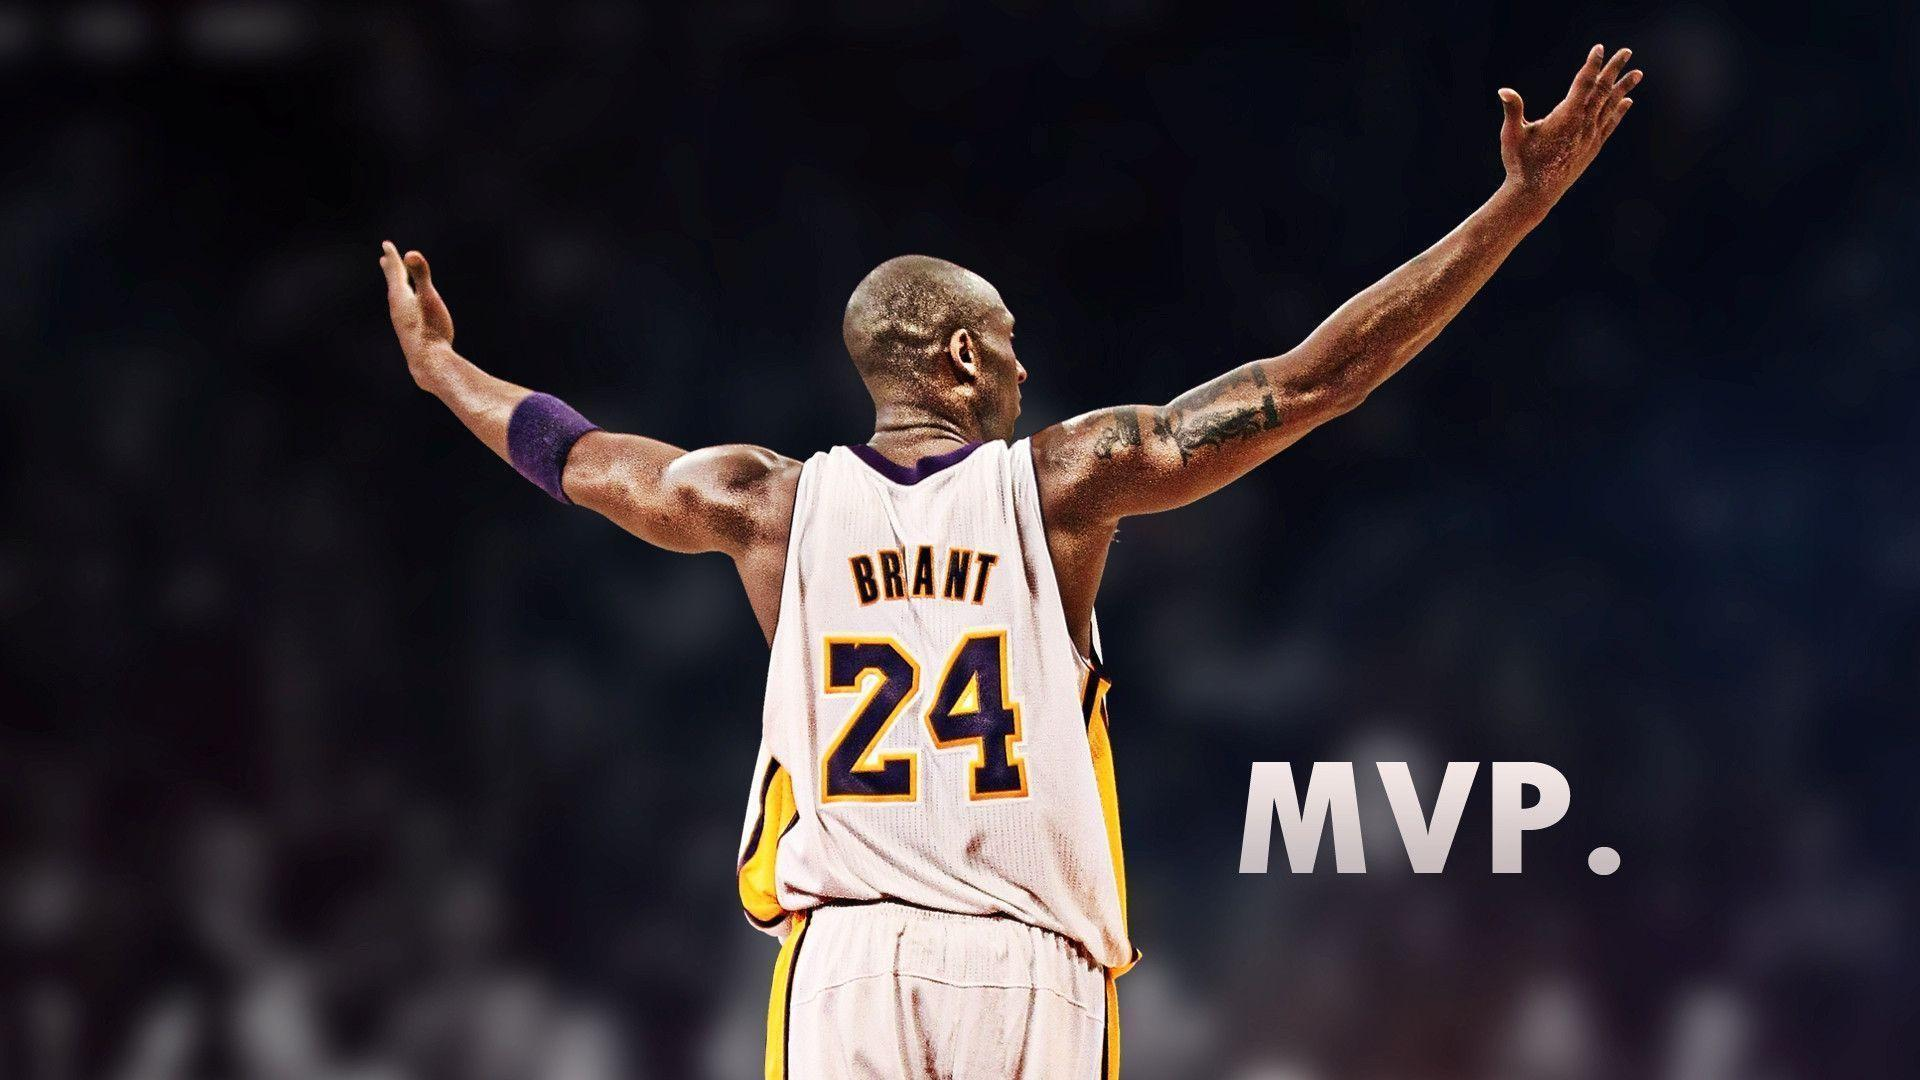 Kobe Wallpapers   Top Kobe Backgrounds   WallpaperAccess 1920x1080